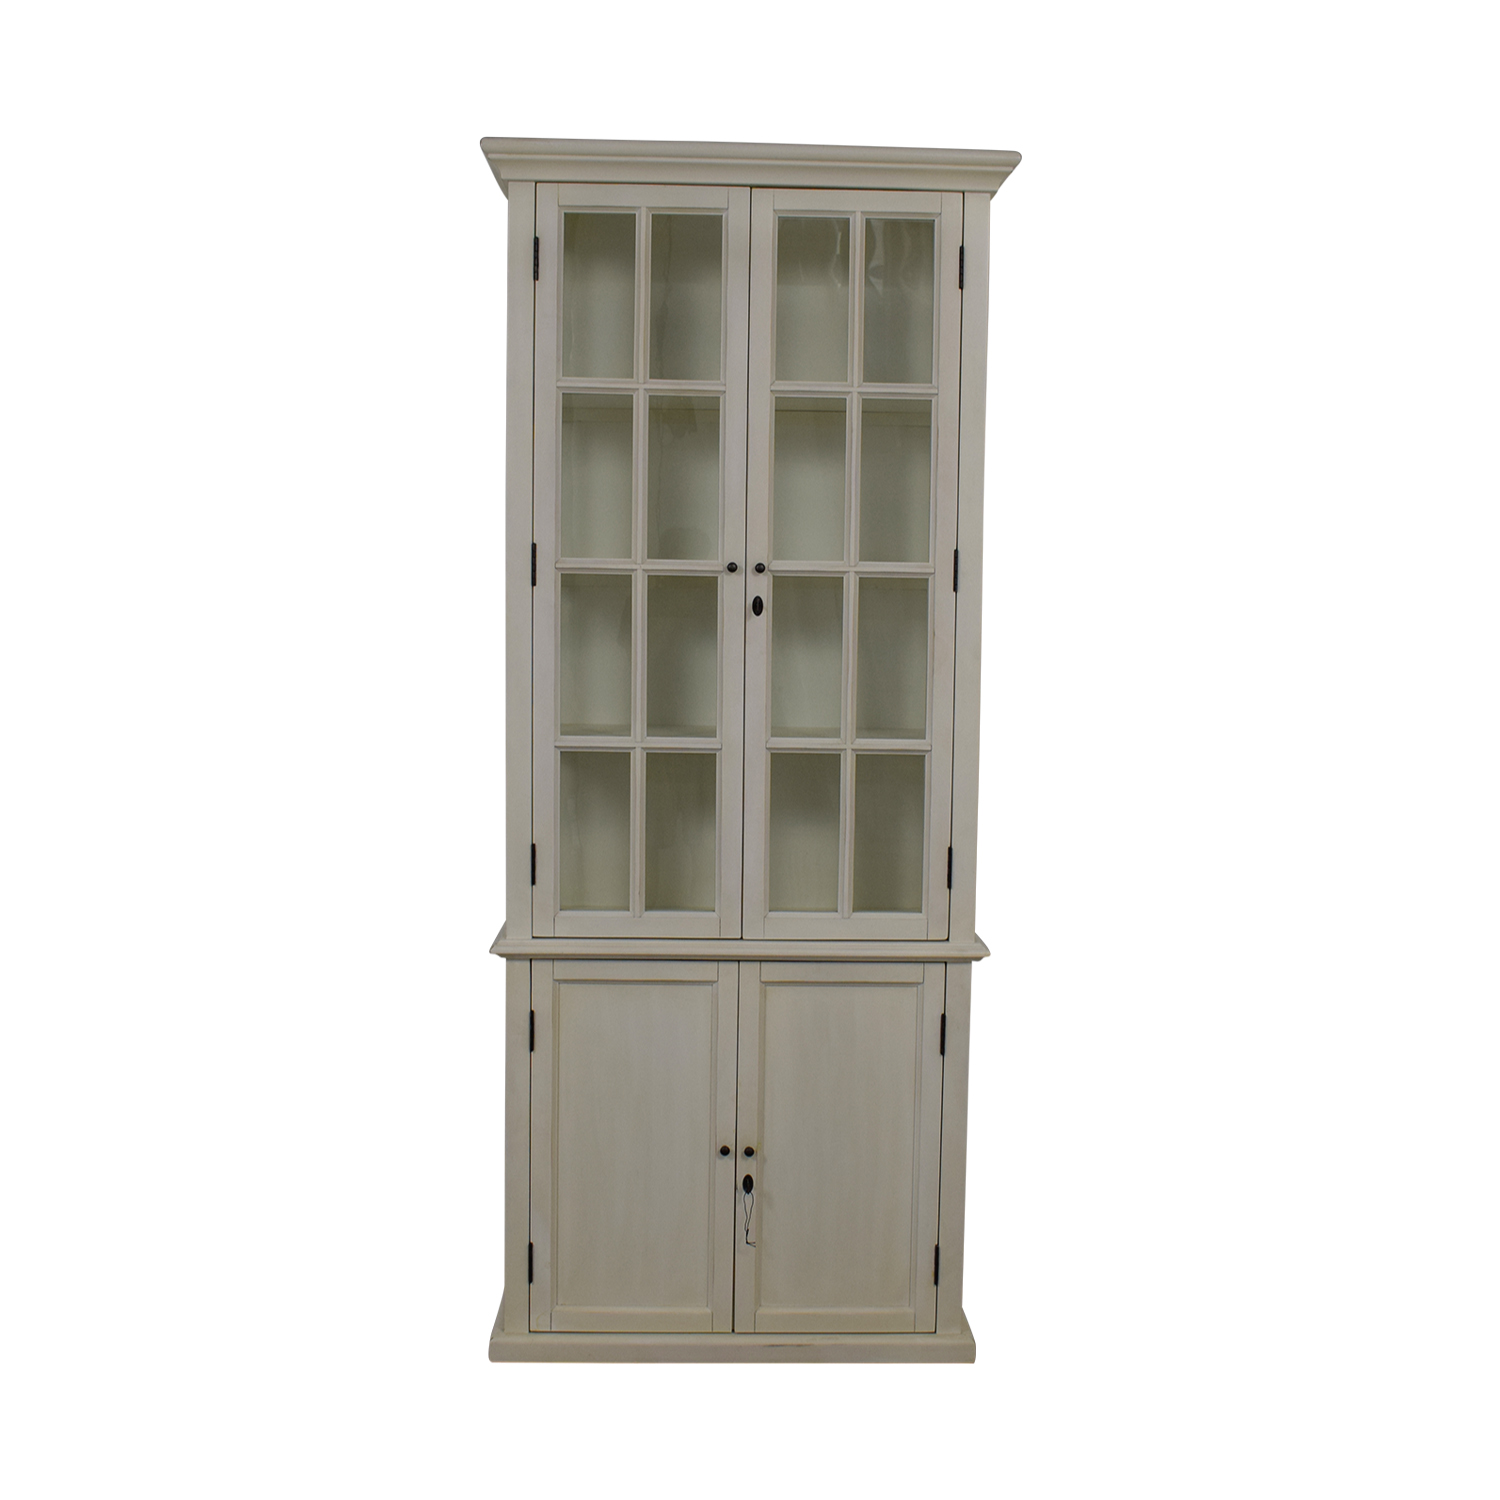 Restoration Hardware Restoration Hardware Hampton White Bookcase for sale